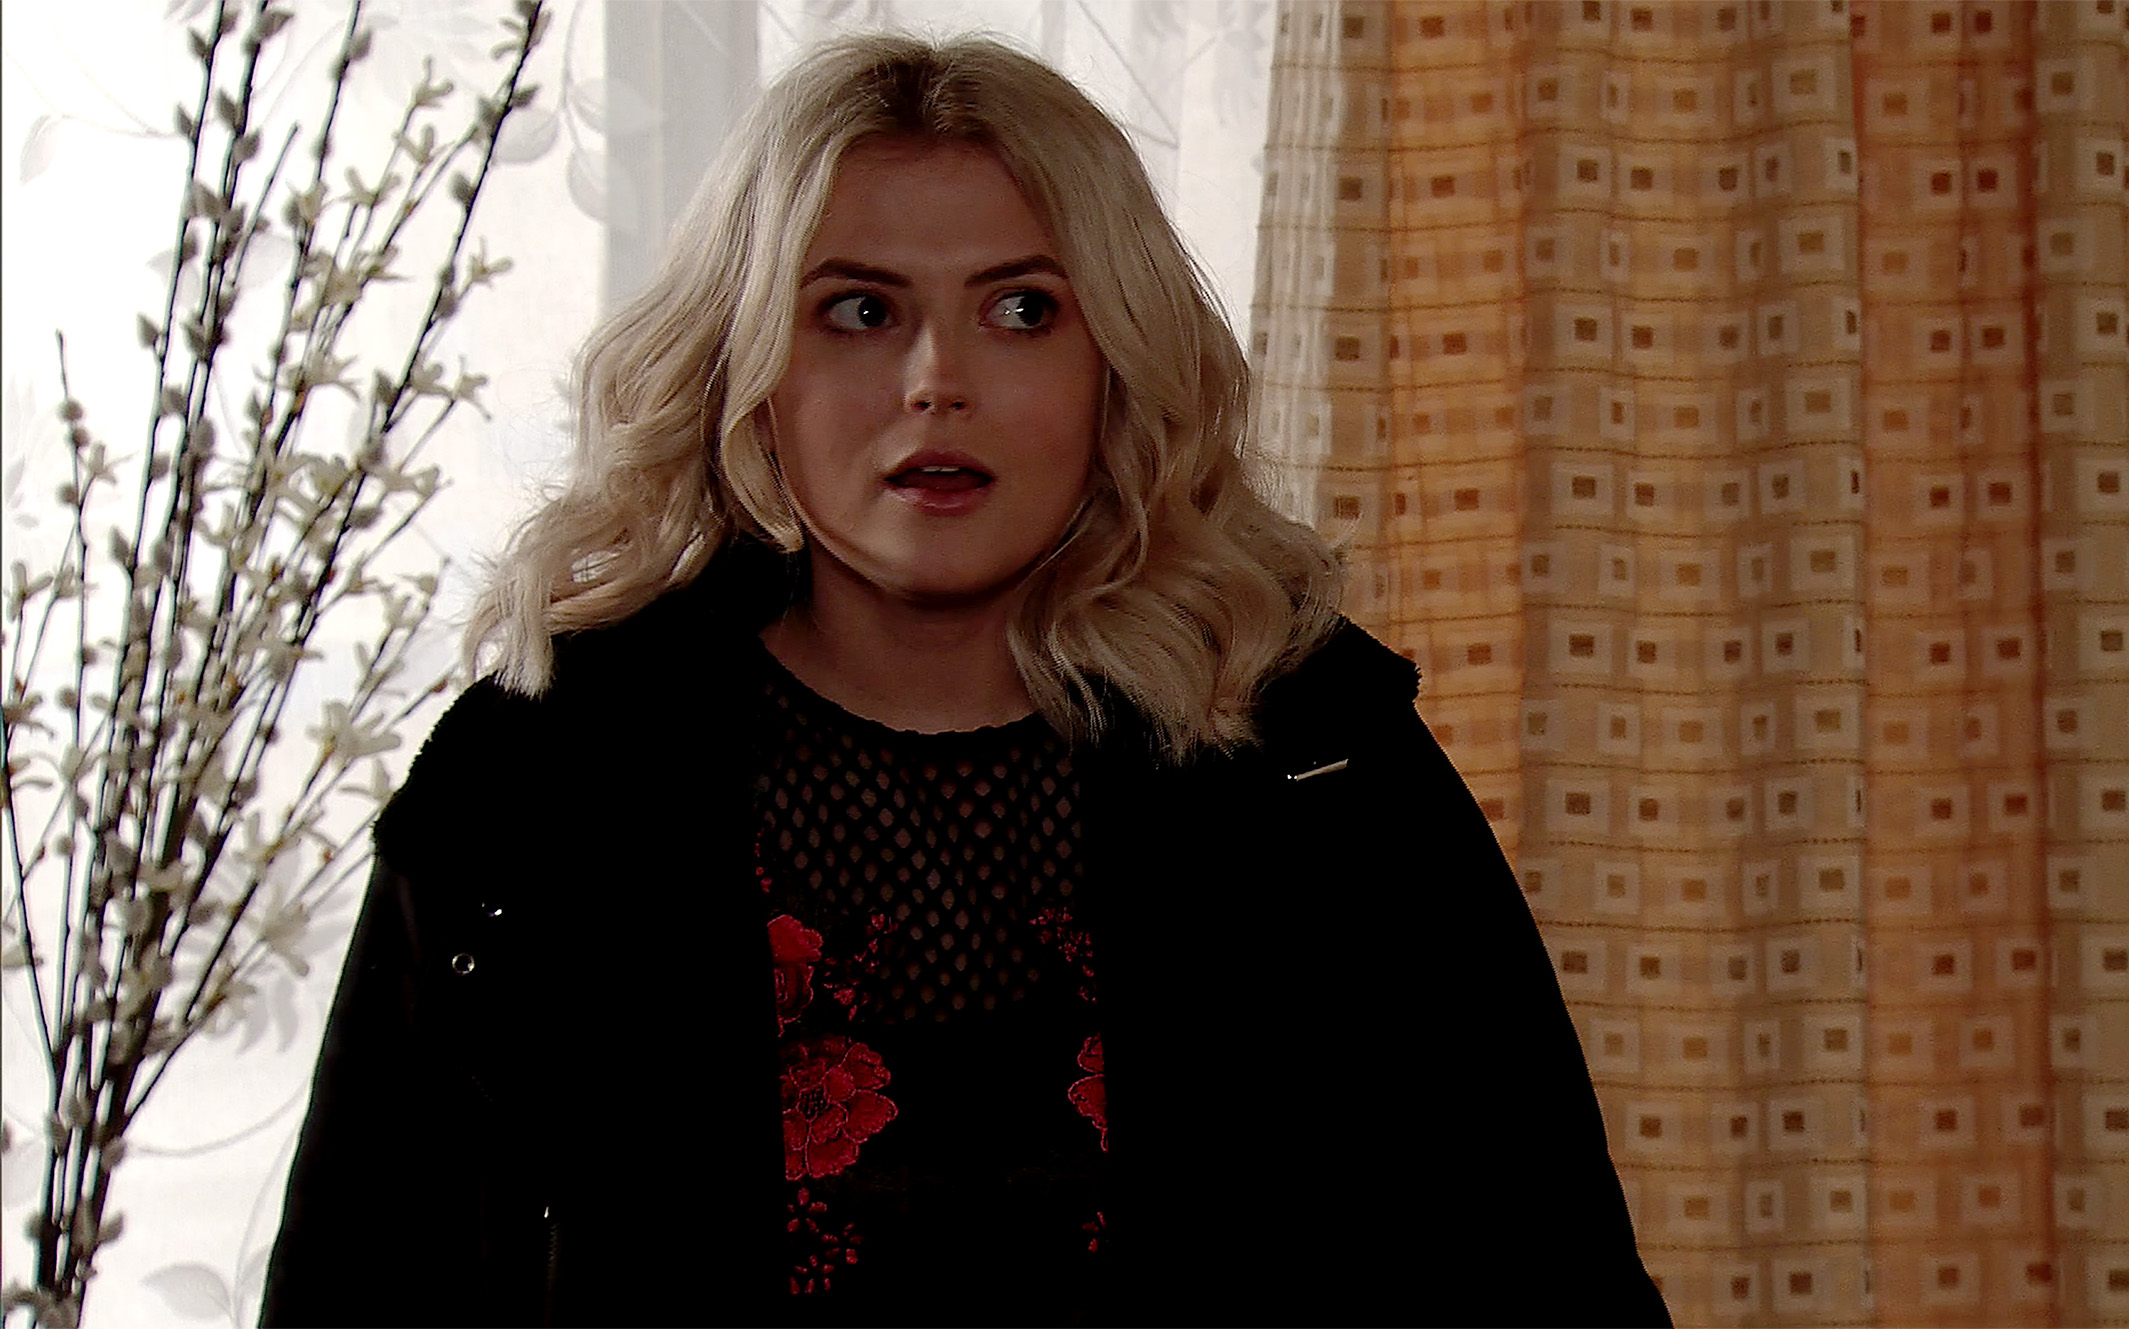 Coronation Street spoilers: Another shock exit as Lucy Fallon quits Bethany Platt role